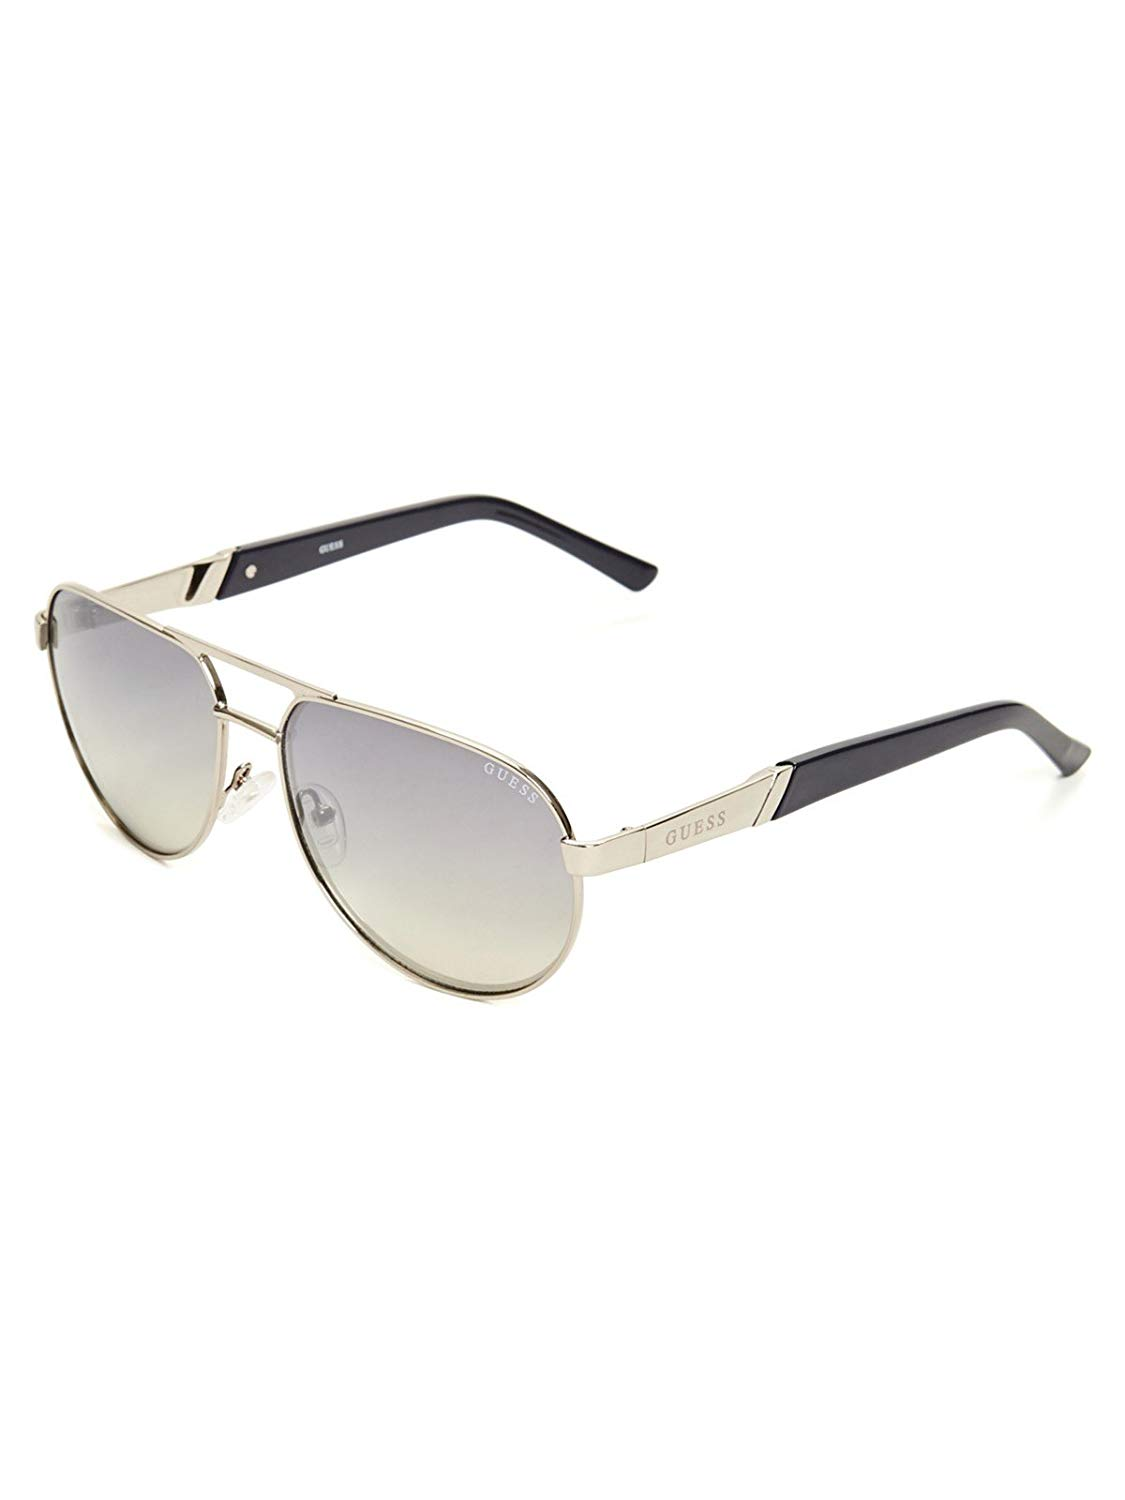 e88b54c6d3 Get Quotations · GUESS Factory Men s Metal Aviator Sunglasses